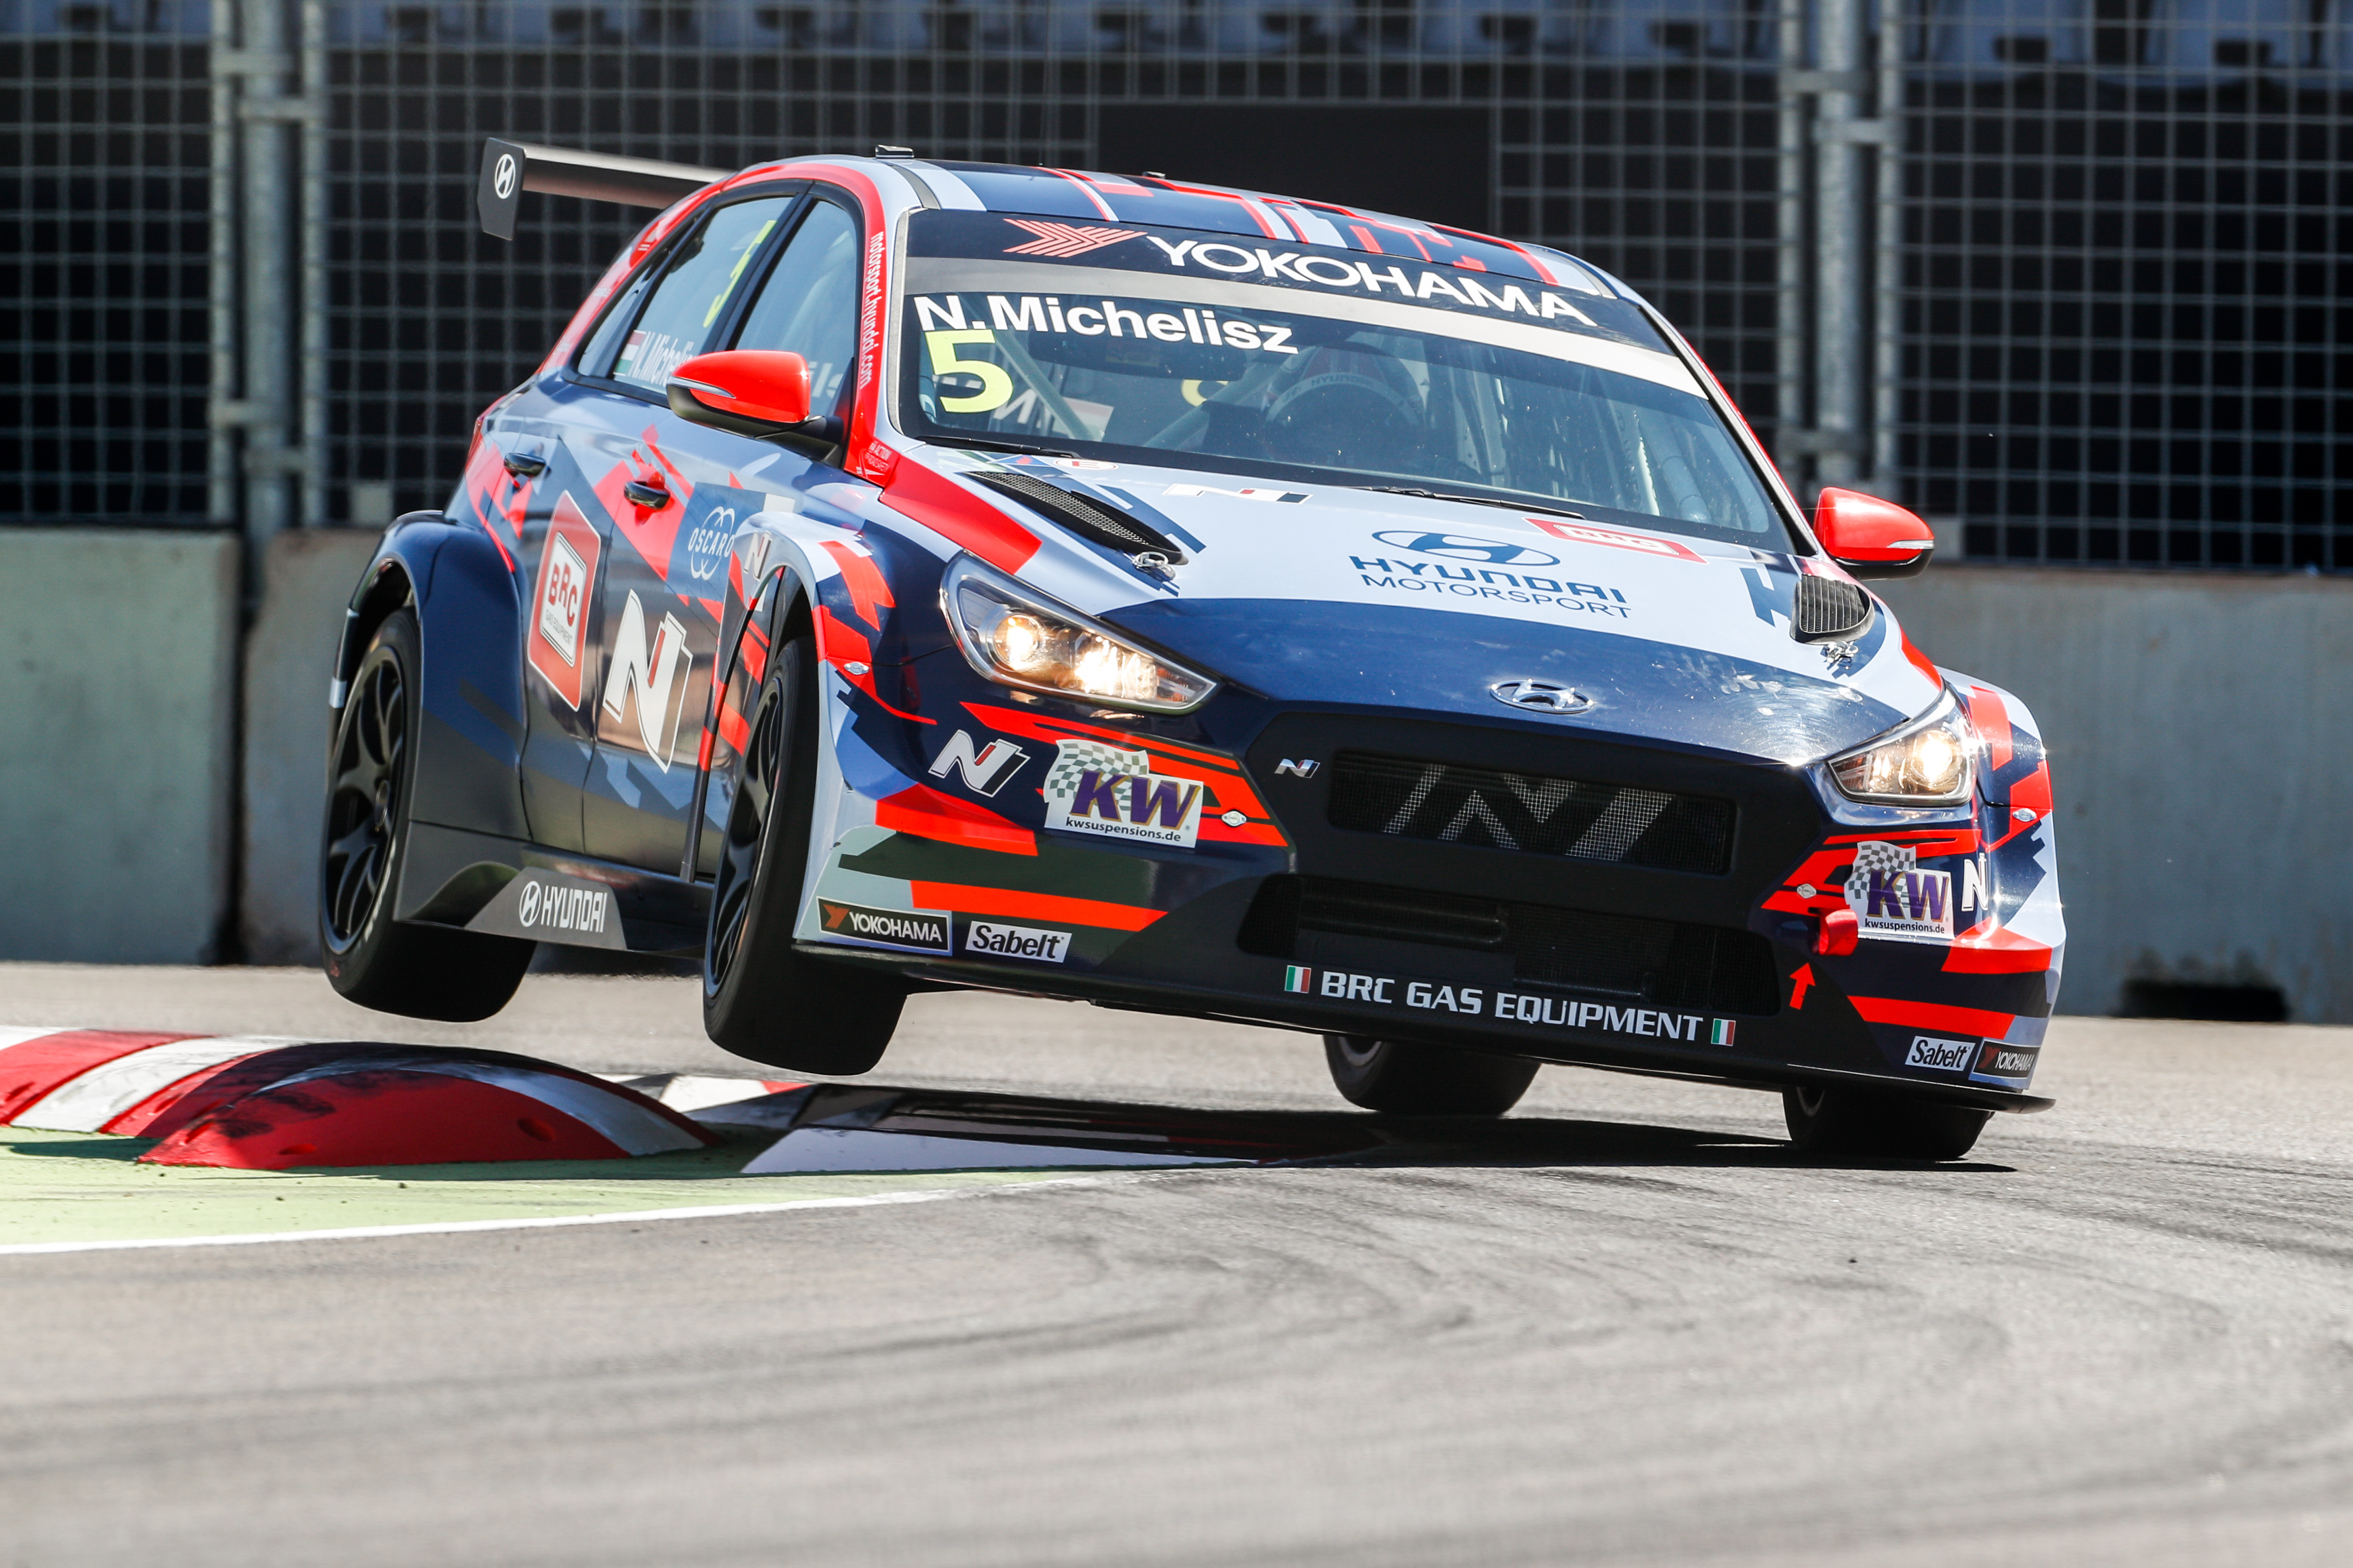 Michelisz Hungary to improve in WTCR